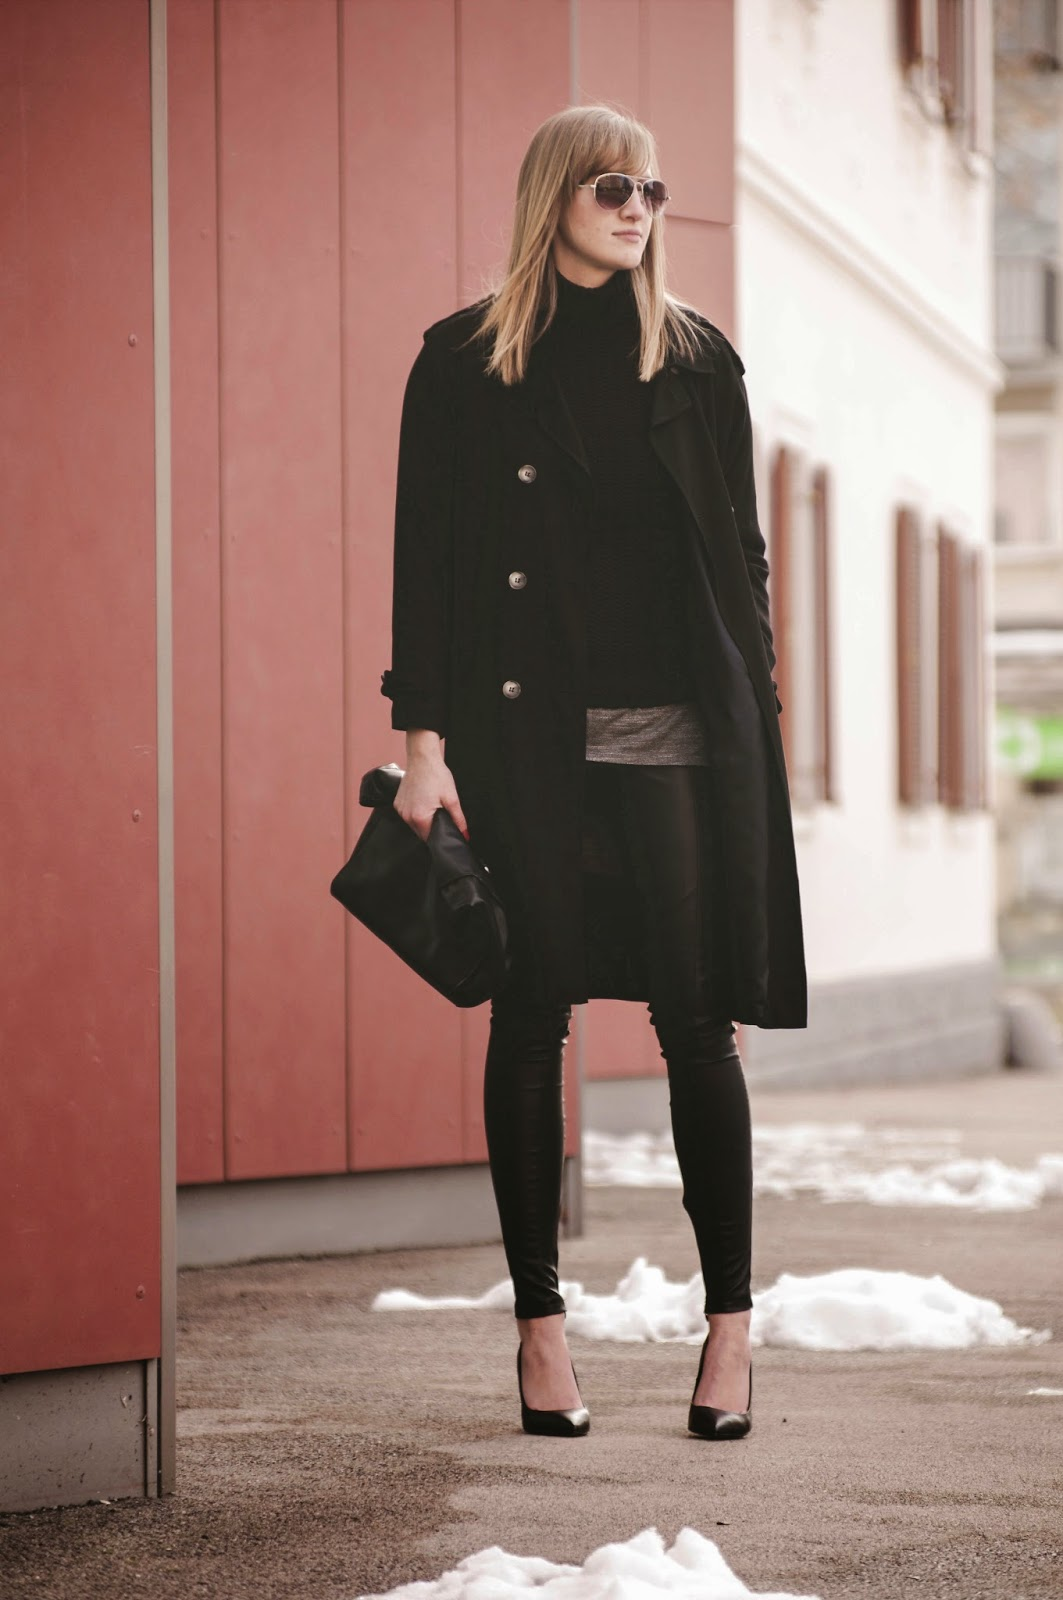 all black outfit, layering outfit, long trench coat topshop, topshop leather pants, aviator sunglasses promod, black turtleneck sweater,  pointy court heels bershka, style blog blogger, fashion blogger